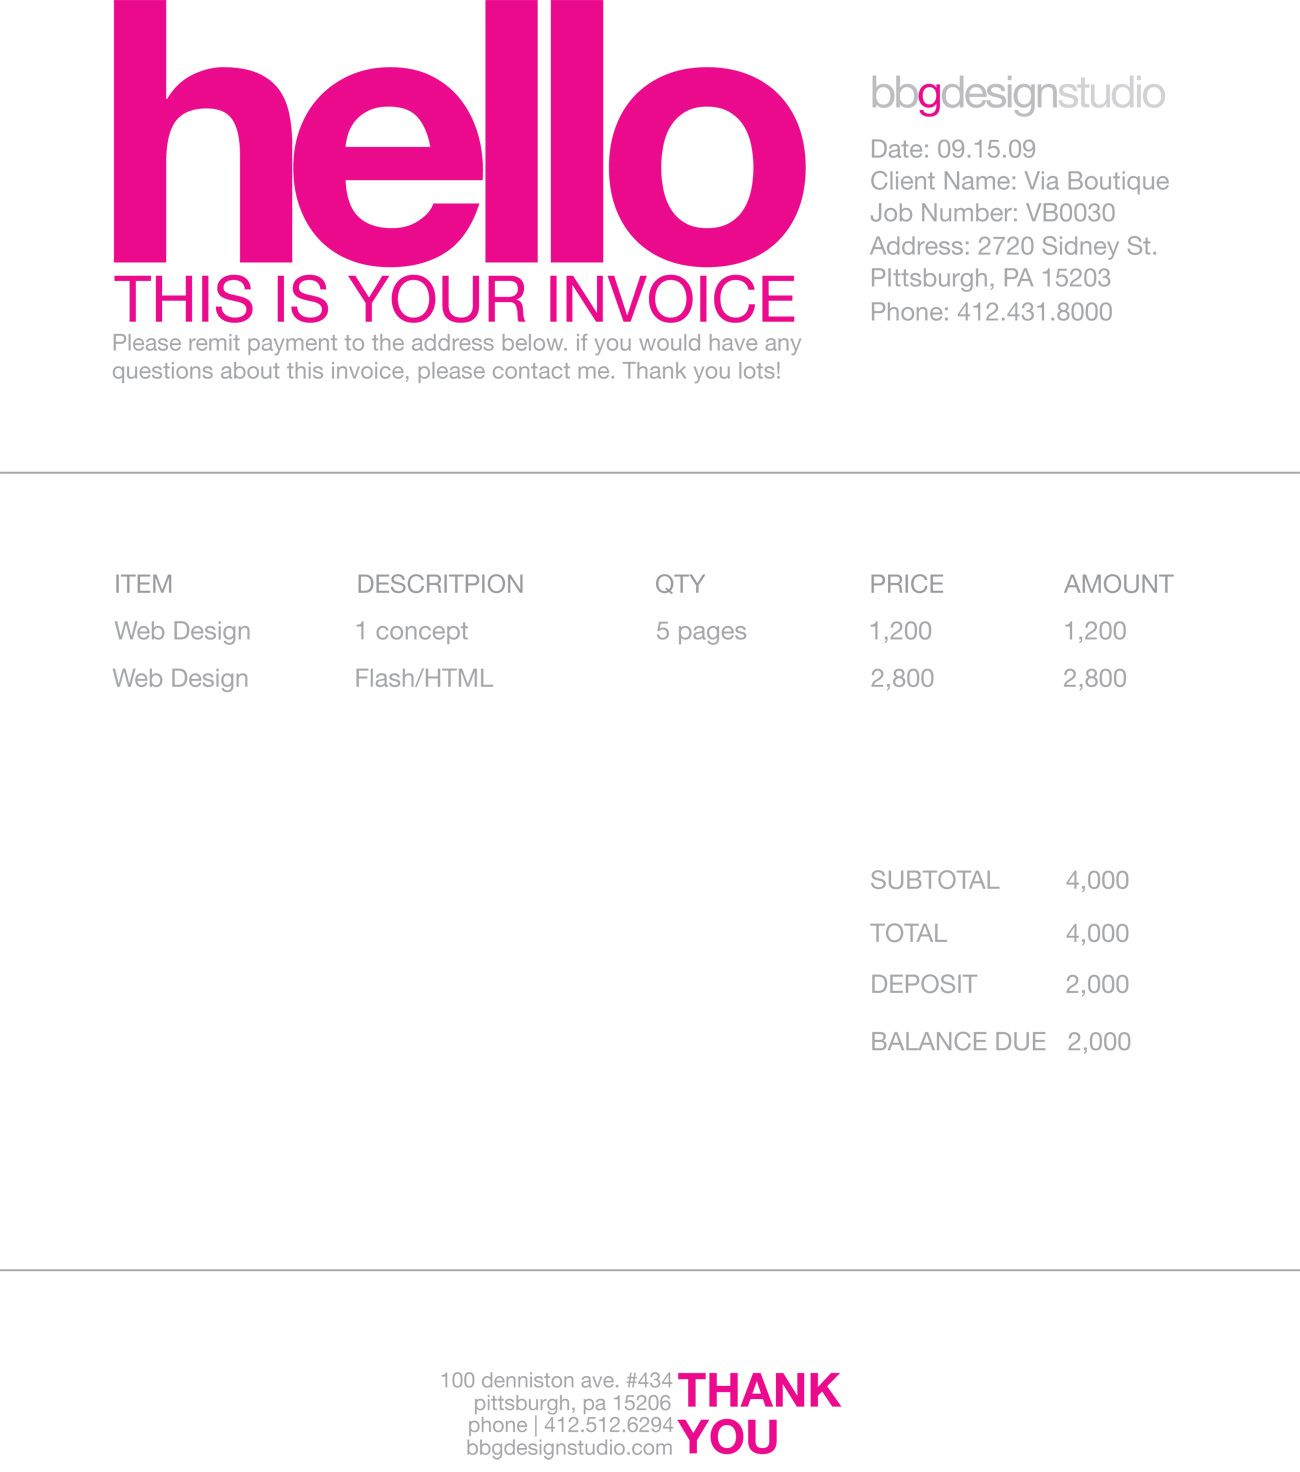 Carsforlessus  Marvelous  Images About Invoice Design On Pinterest With Interesting Hitachi Invoice Finance Besides Packing List Invoice Furthermore Accounting And Invoicing Software With Cute Ongc Invoice Tracking Also Uk Invoice Template In Addition Invoices Sample And Invoice Envelope As Well As Sample Of A Commercial Invoice Additionally Excel Invoice Template Uk From Pinterestcom With Carsforlessus  Interesting  Images About Invoice Design On Pinterest With Cute Hitachi Invoice Finance Besides Packing List Invoice Furthermore Accounting And Invoicing Software And Marvelous Ongc Invoice Tracking Also Uk Invoice Template In Addition Invoices Sample From Pinterestcom